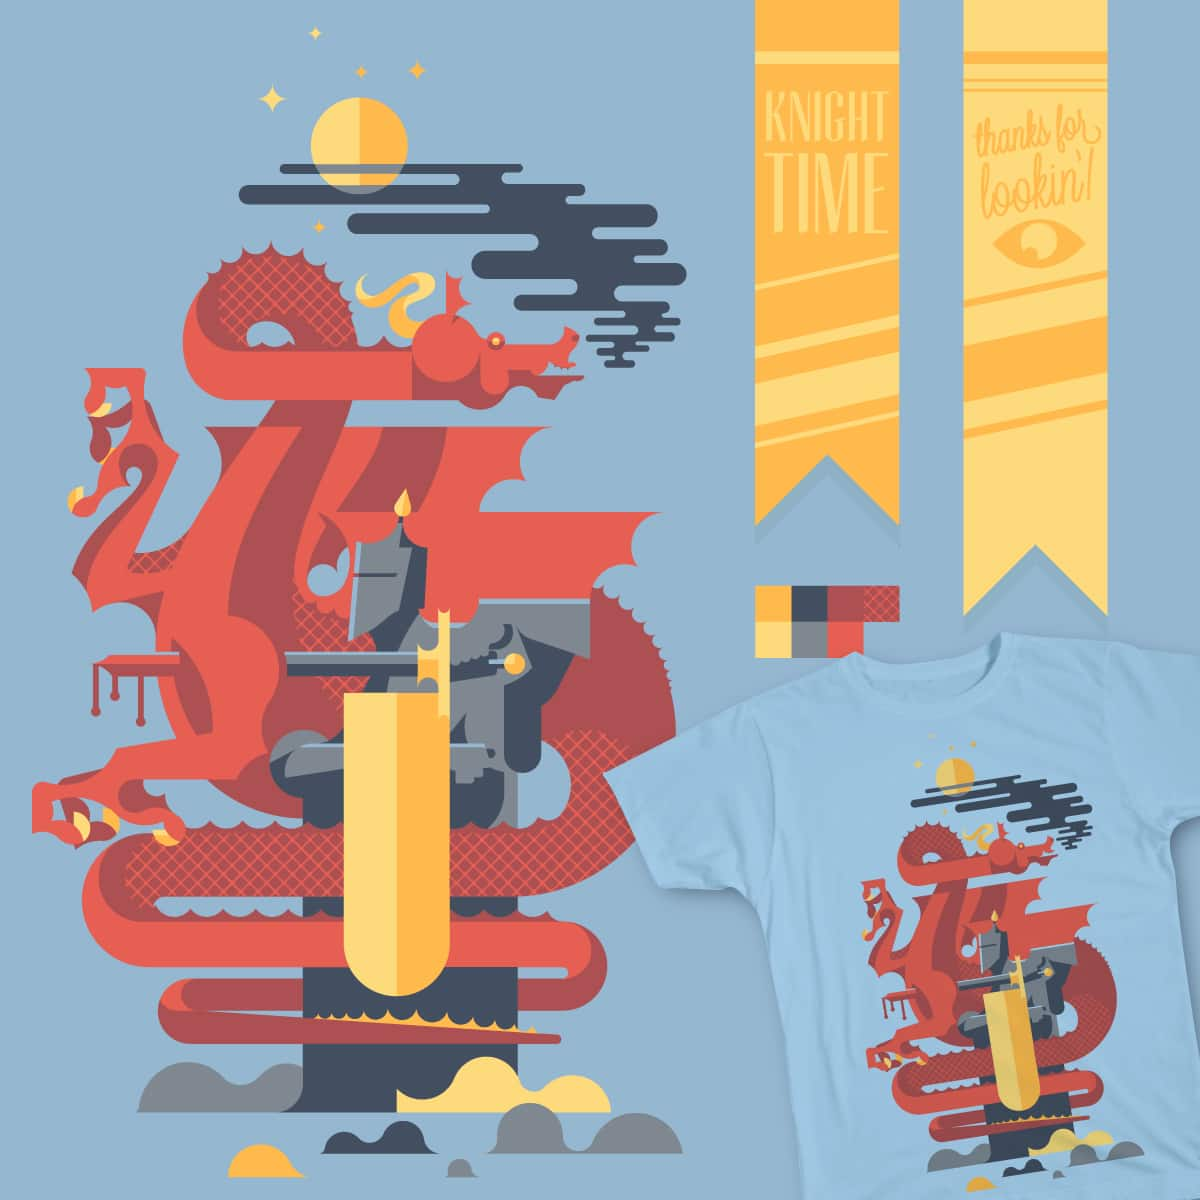 Knight Time by The_Unassociated_Press on Threadless